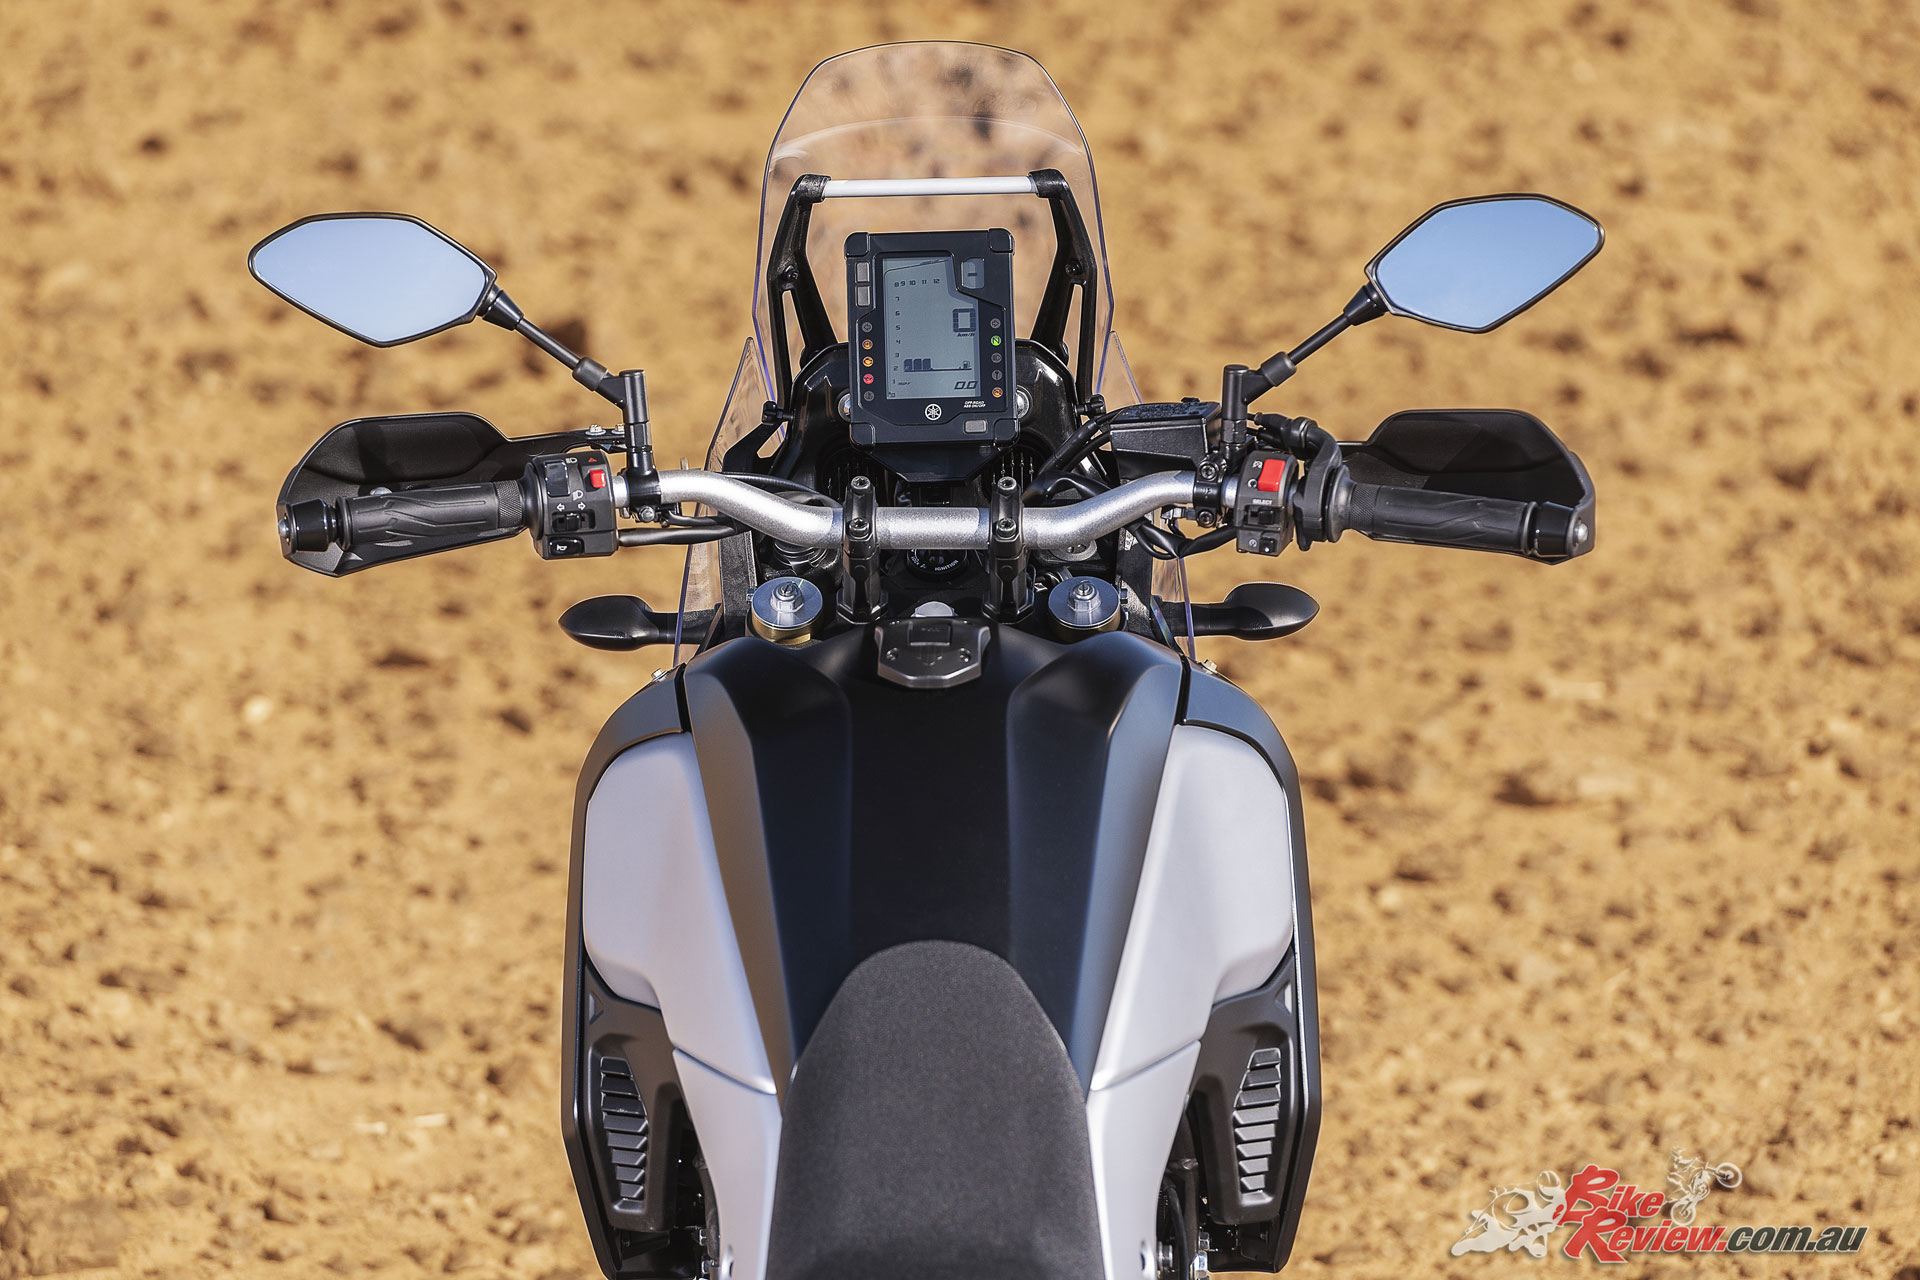 2019 Yamaha Tenere 700 - Generous cockpit space with a thin tank